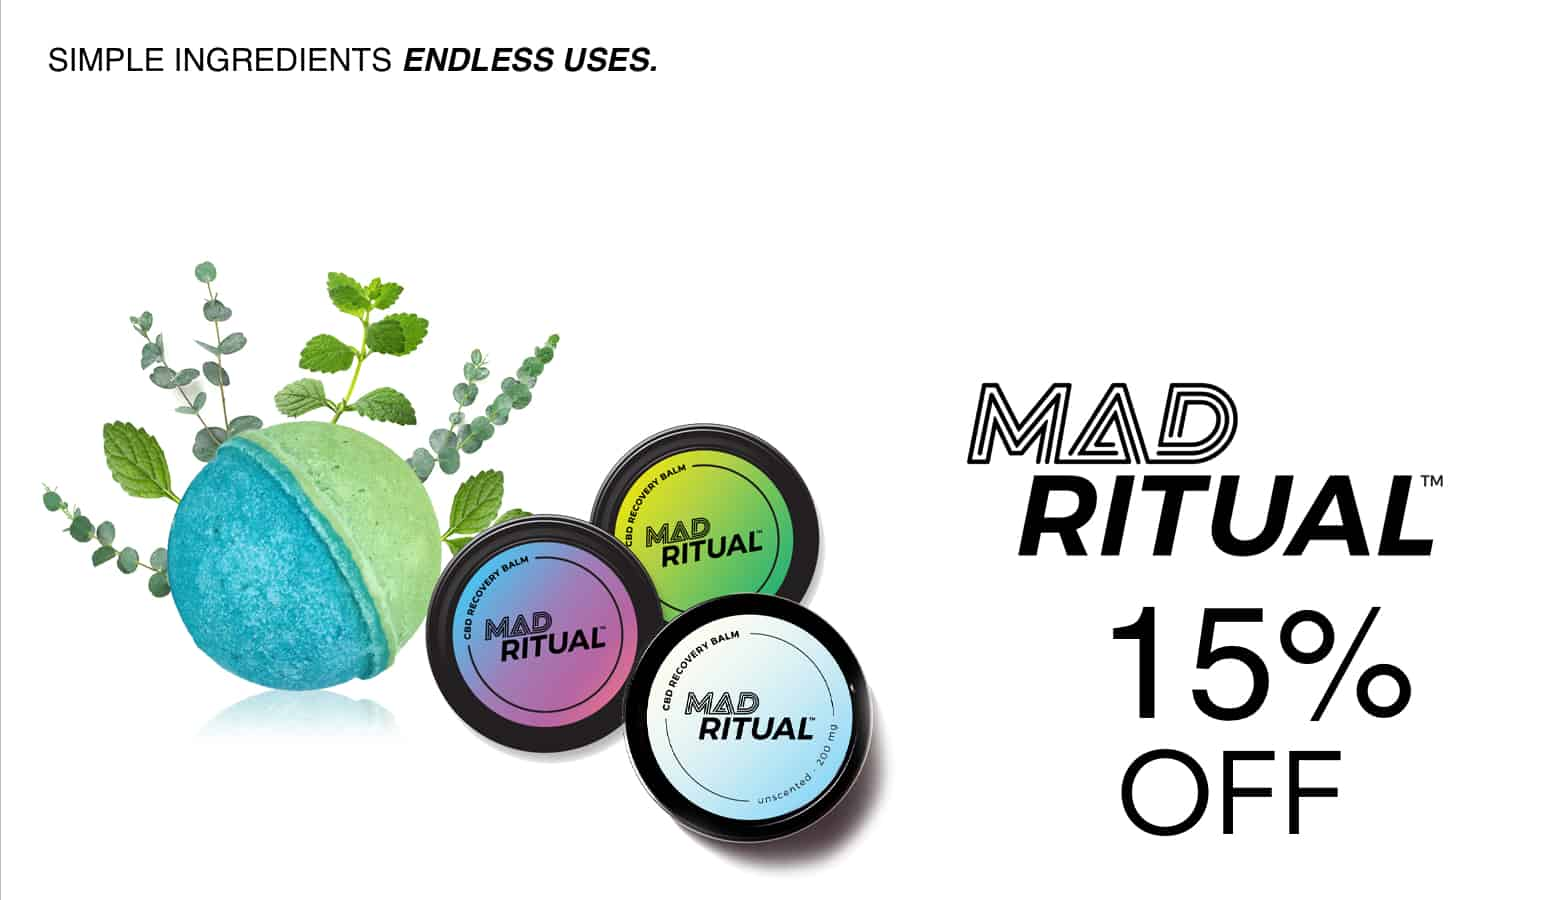 Mad Ritual CBD Coupon Code Offer Website